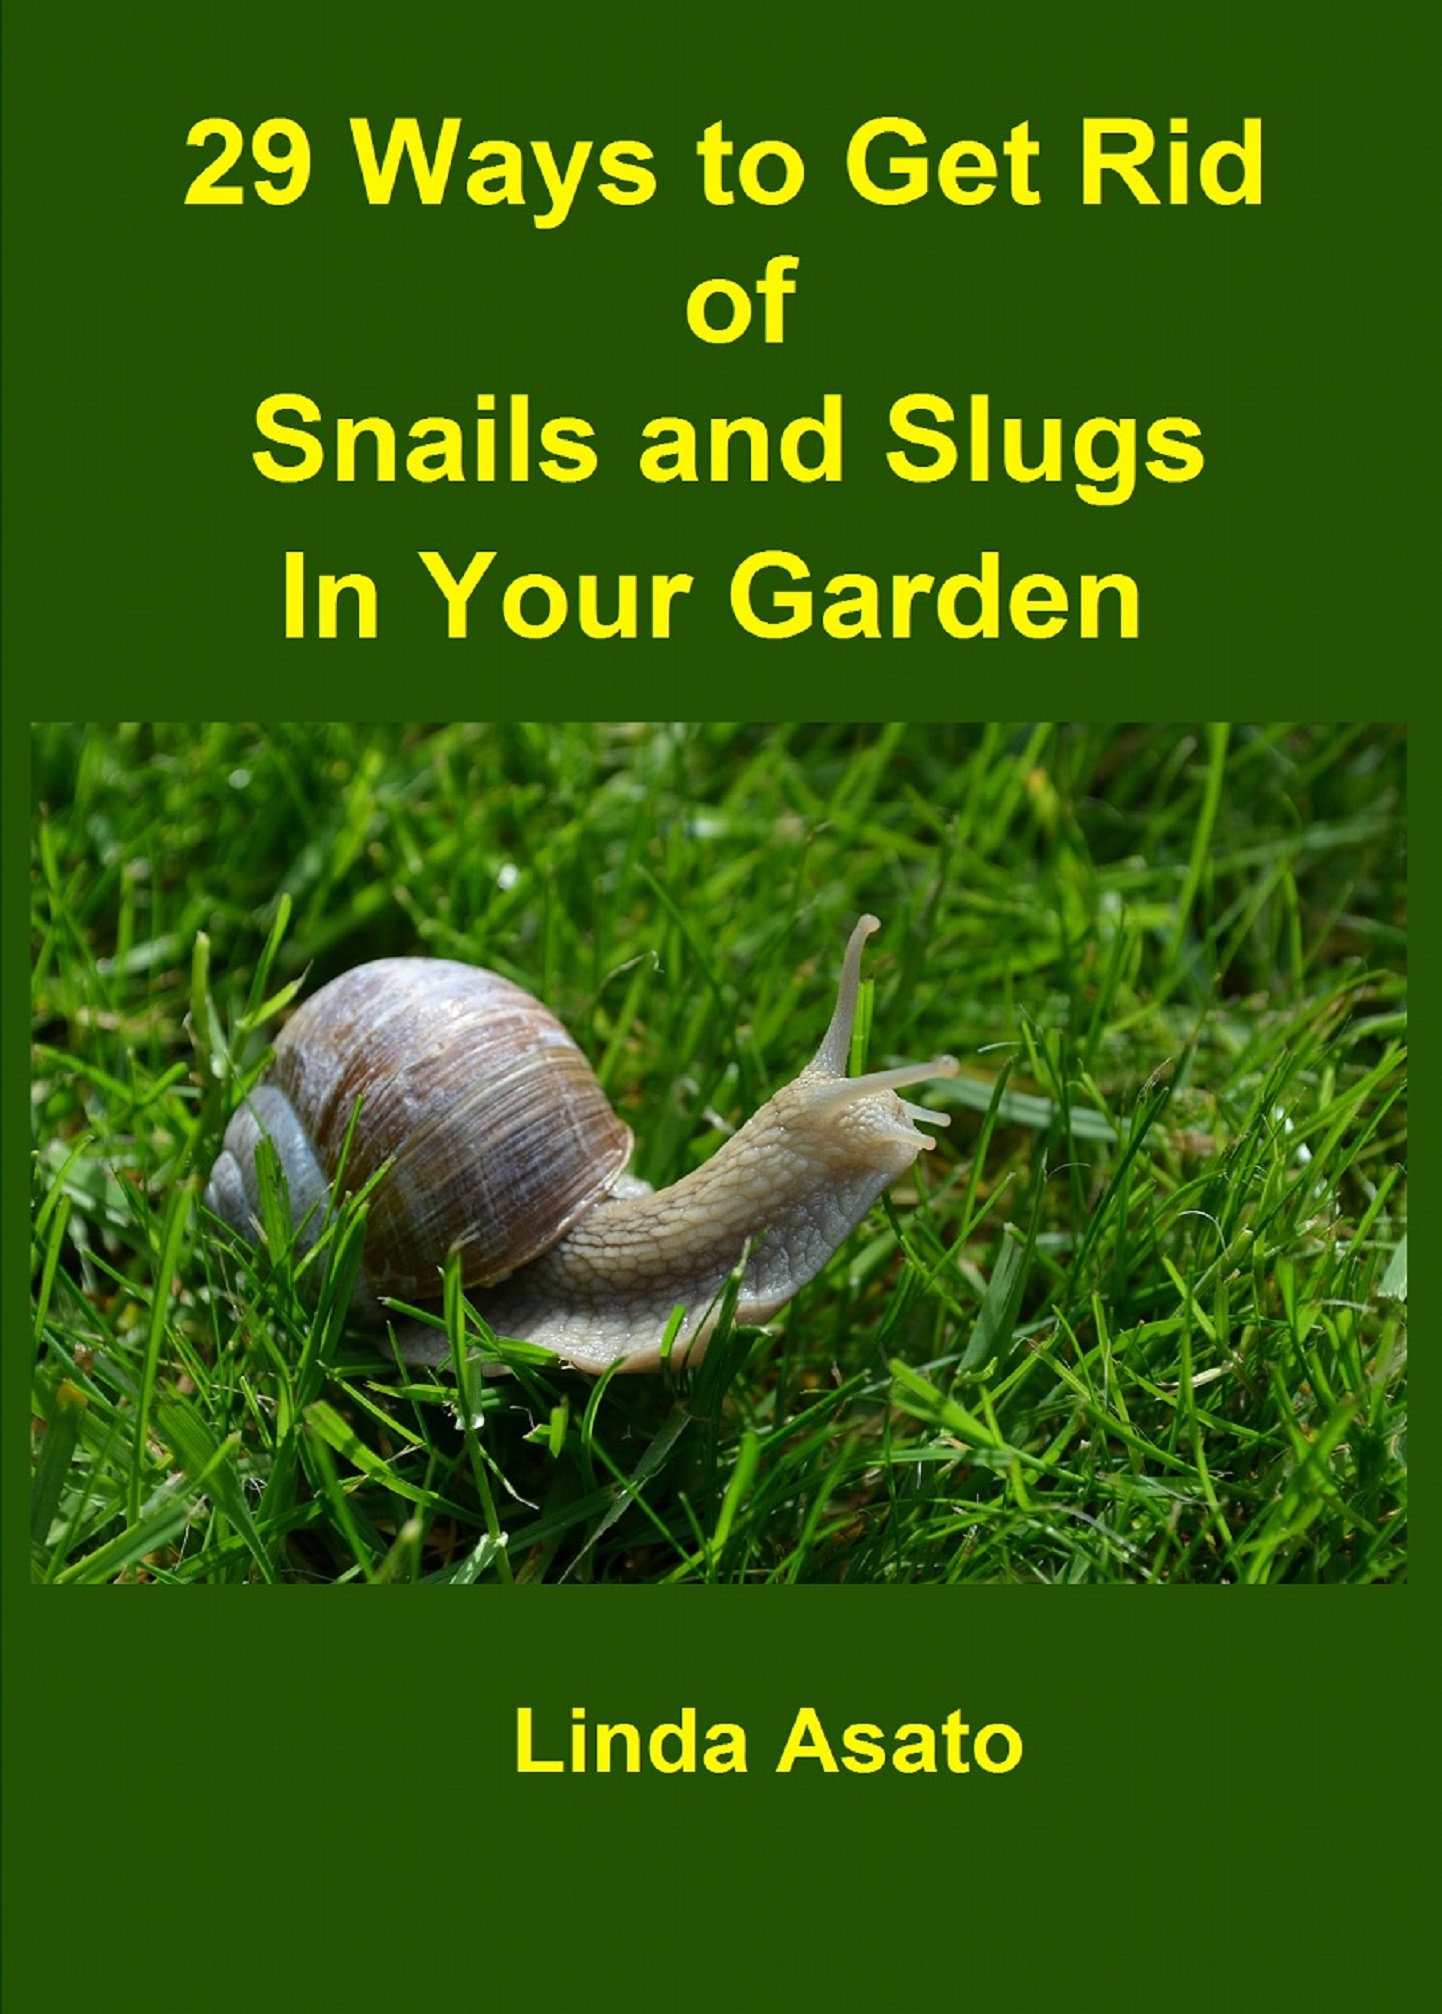 29 Ways to Get Rid of Snails and Slugs in Your Garden